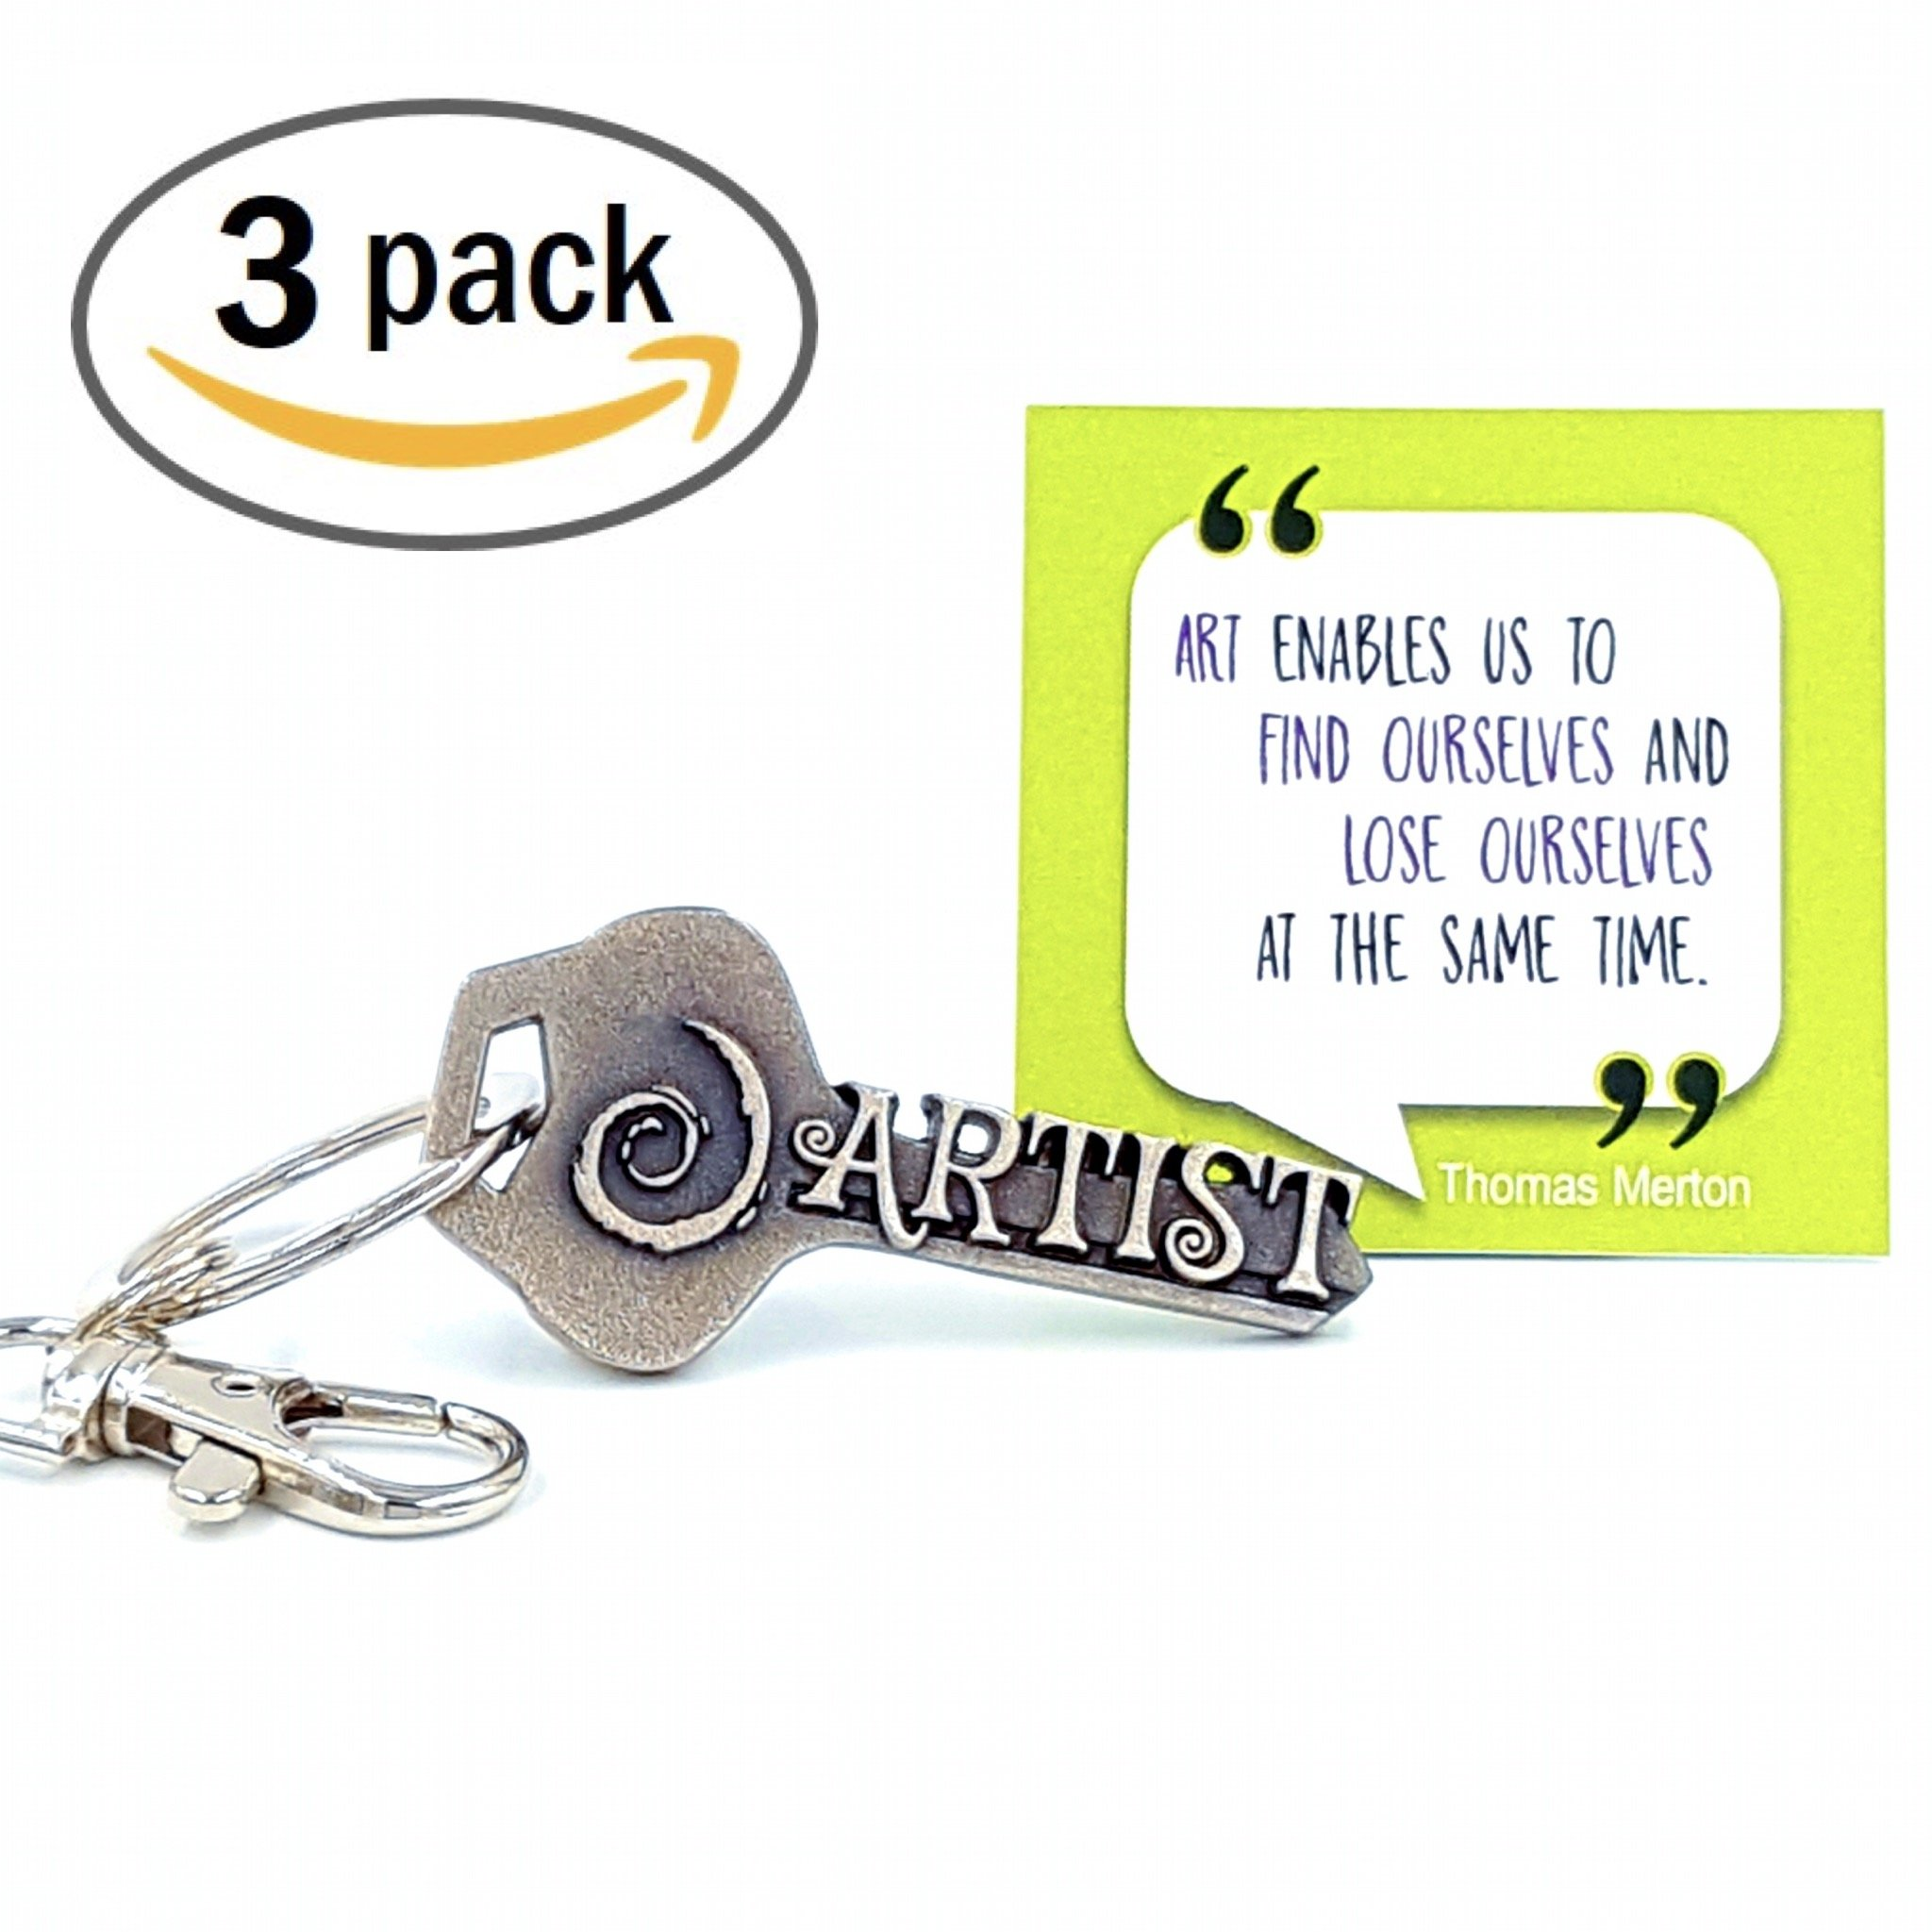 3-PACK key2Bme ARTIST key - swirl art keychain & inspirational quote - the cute cool fun unique artsy small art gift under 10 for giving painters sketch kids teens friends girls women art teacher